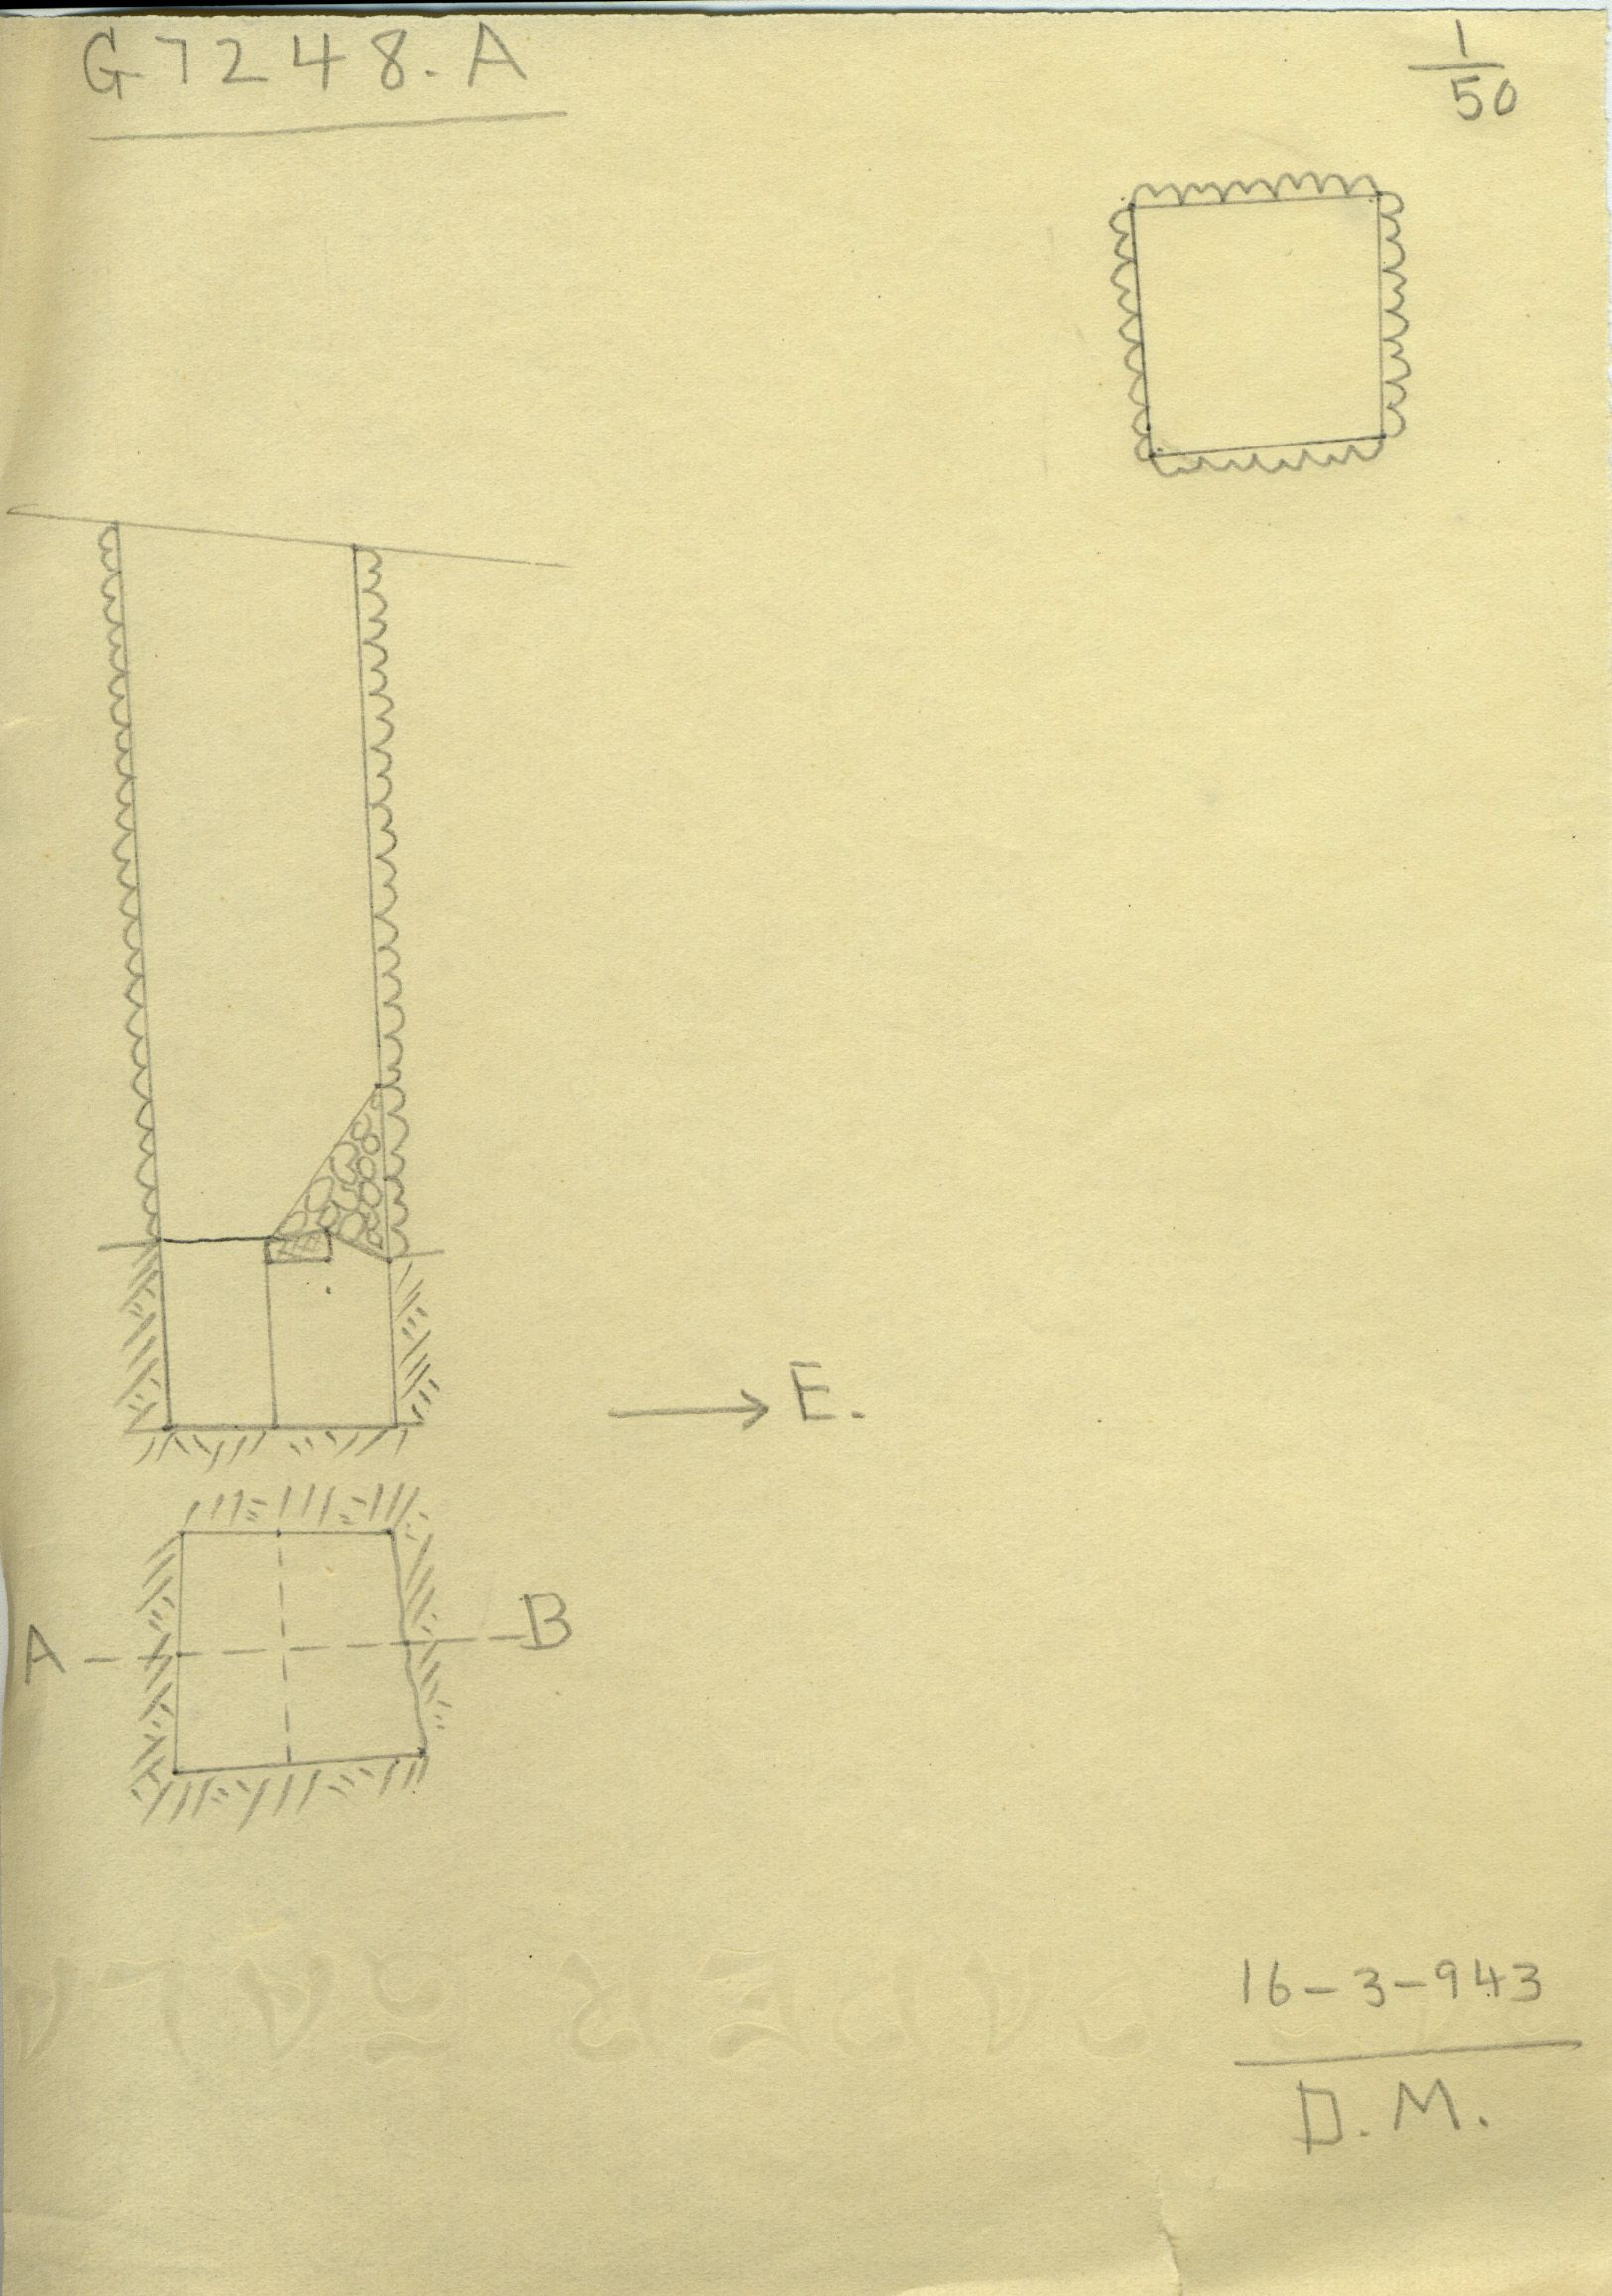 Maps and plans: G 7248, Shaft A